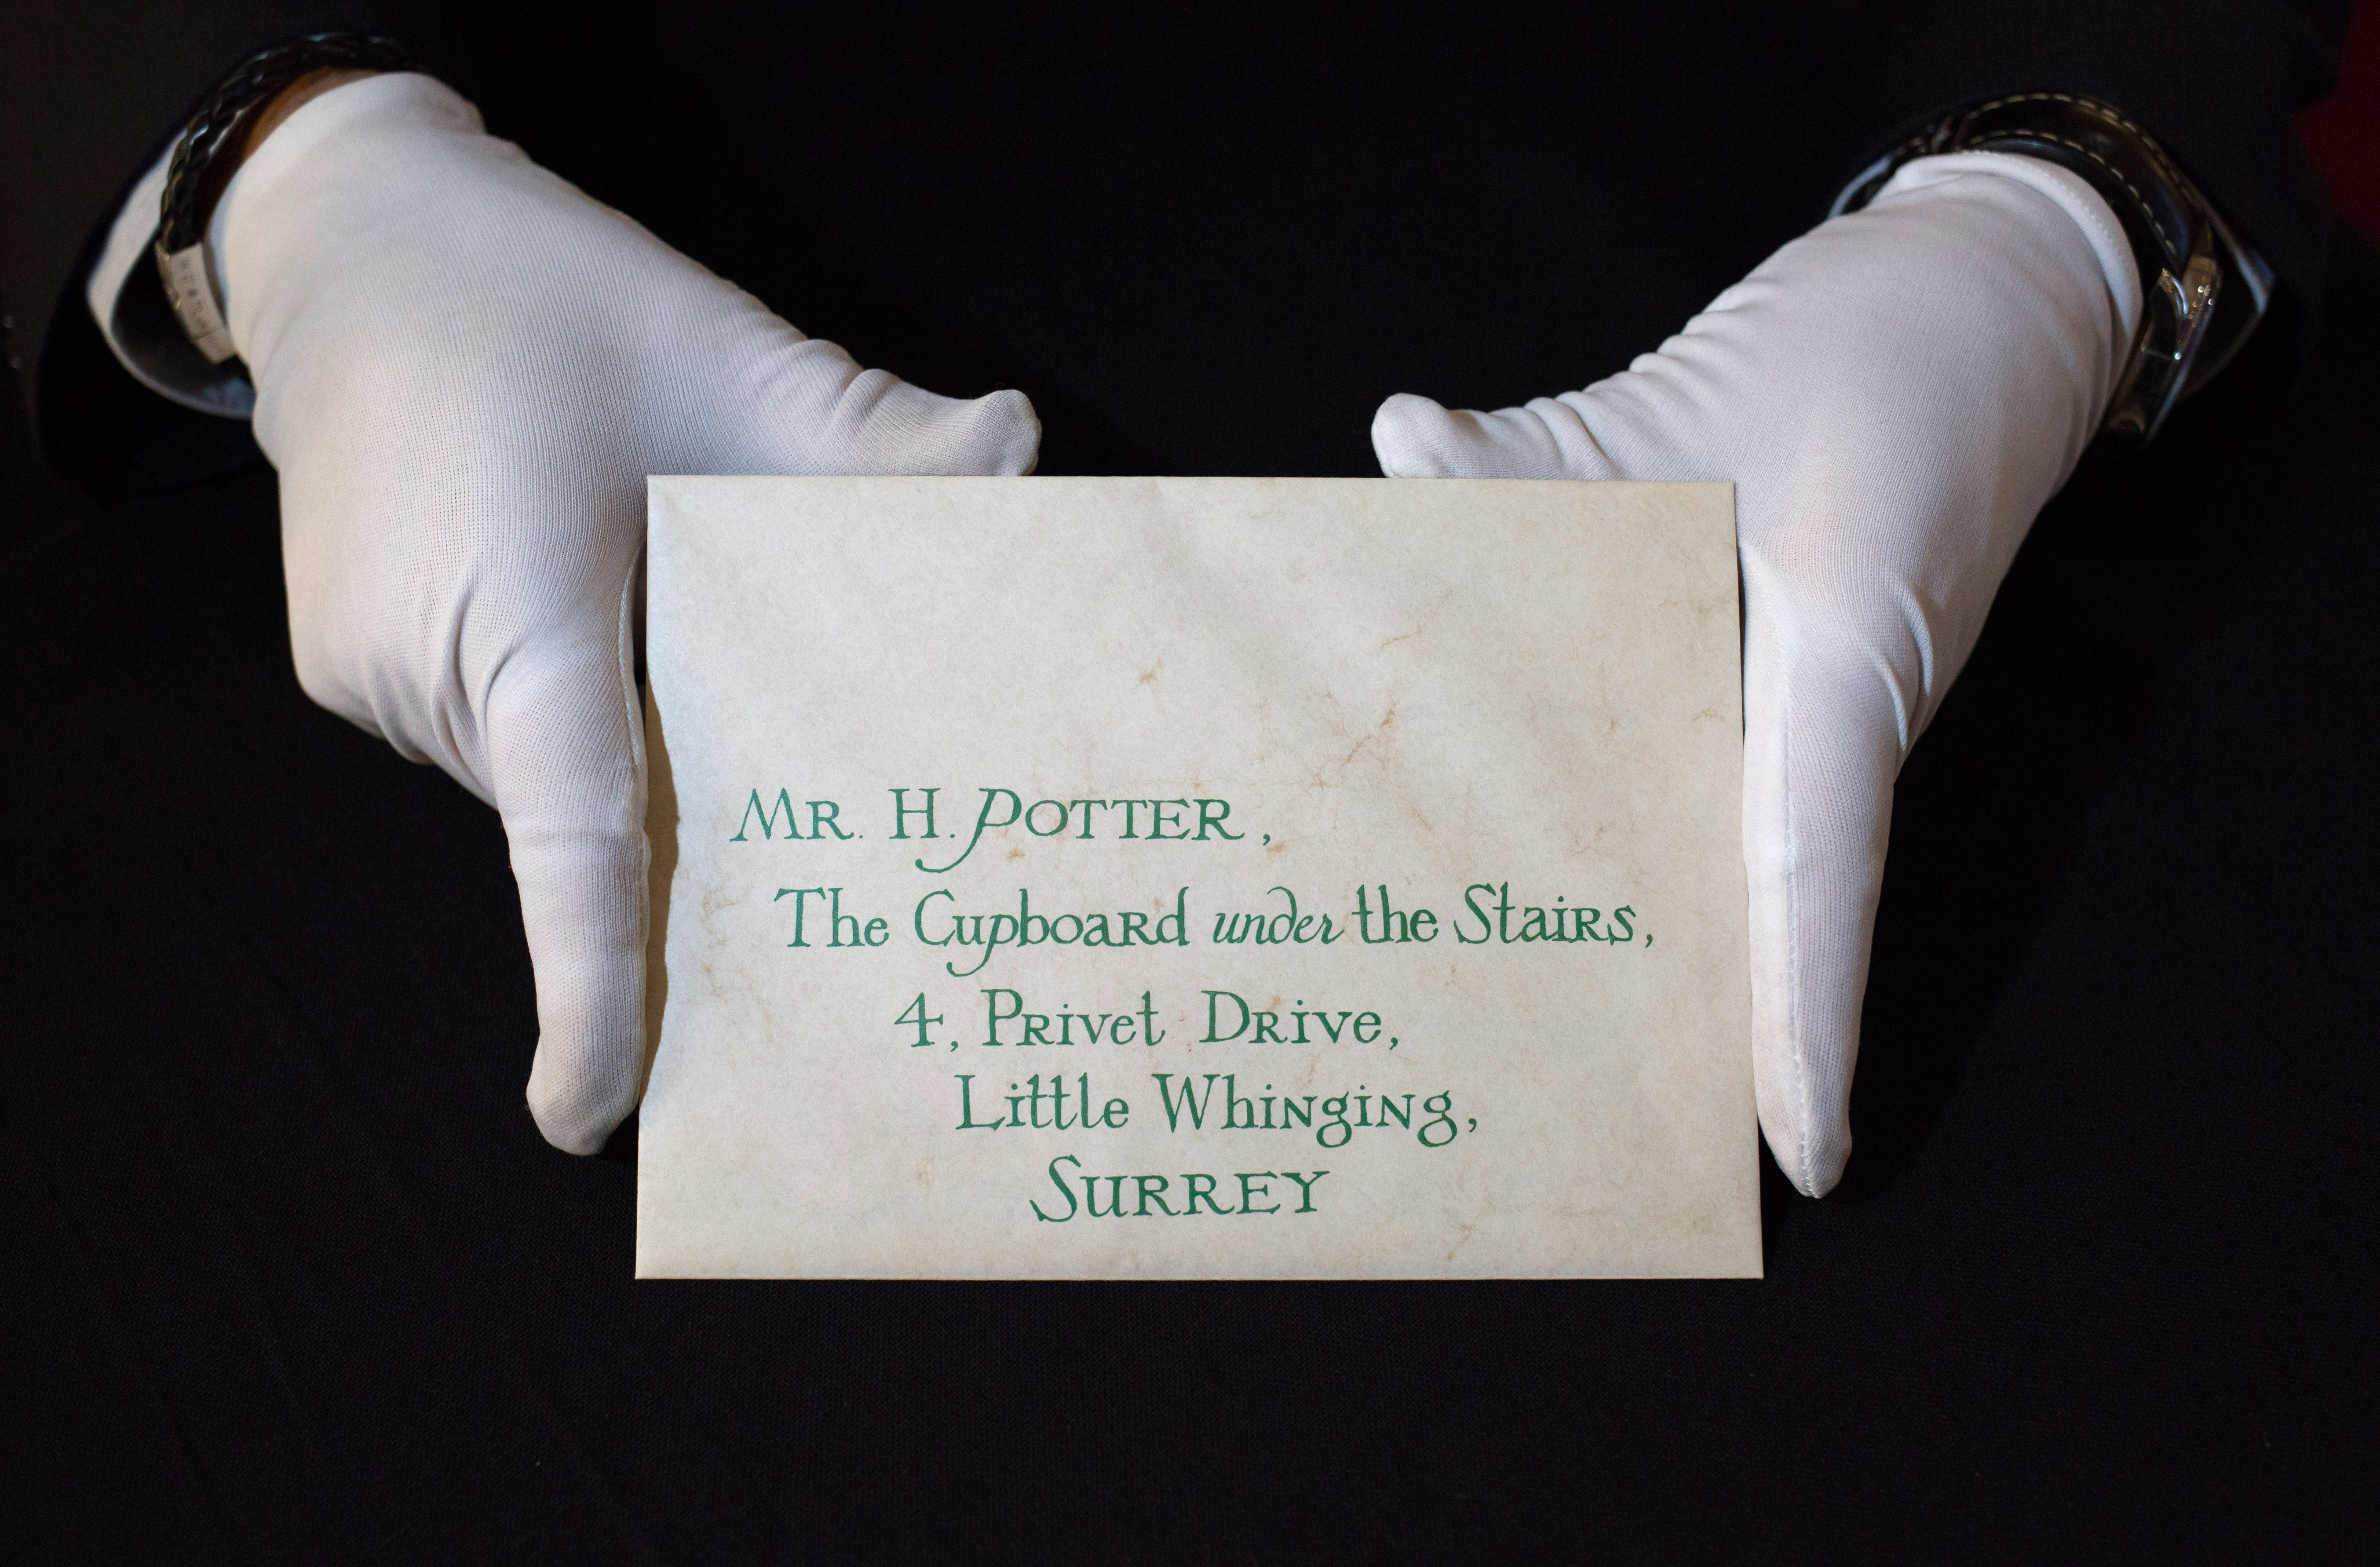 Harry Potter Hogwarts Acceptance Letter with Wax Seal from Harry Potter and the Philosopher's Stone (2001)